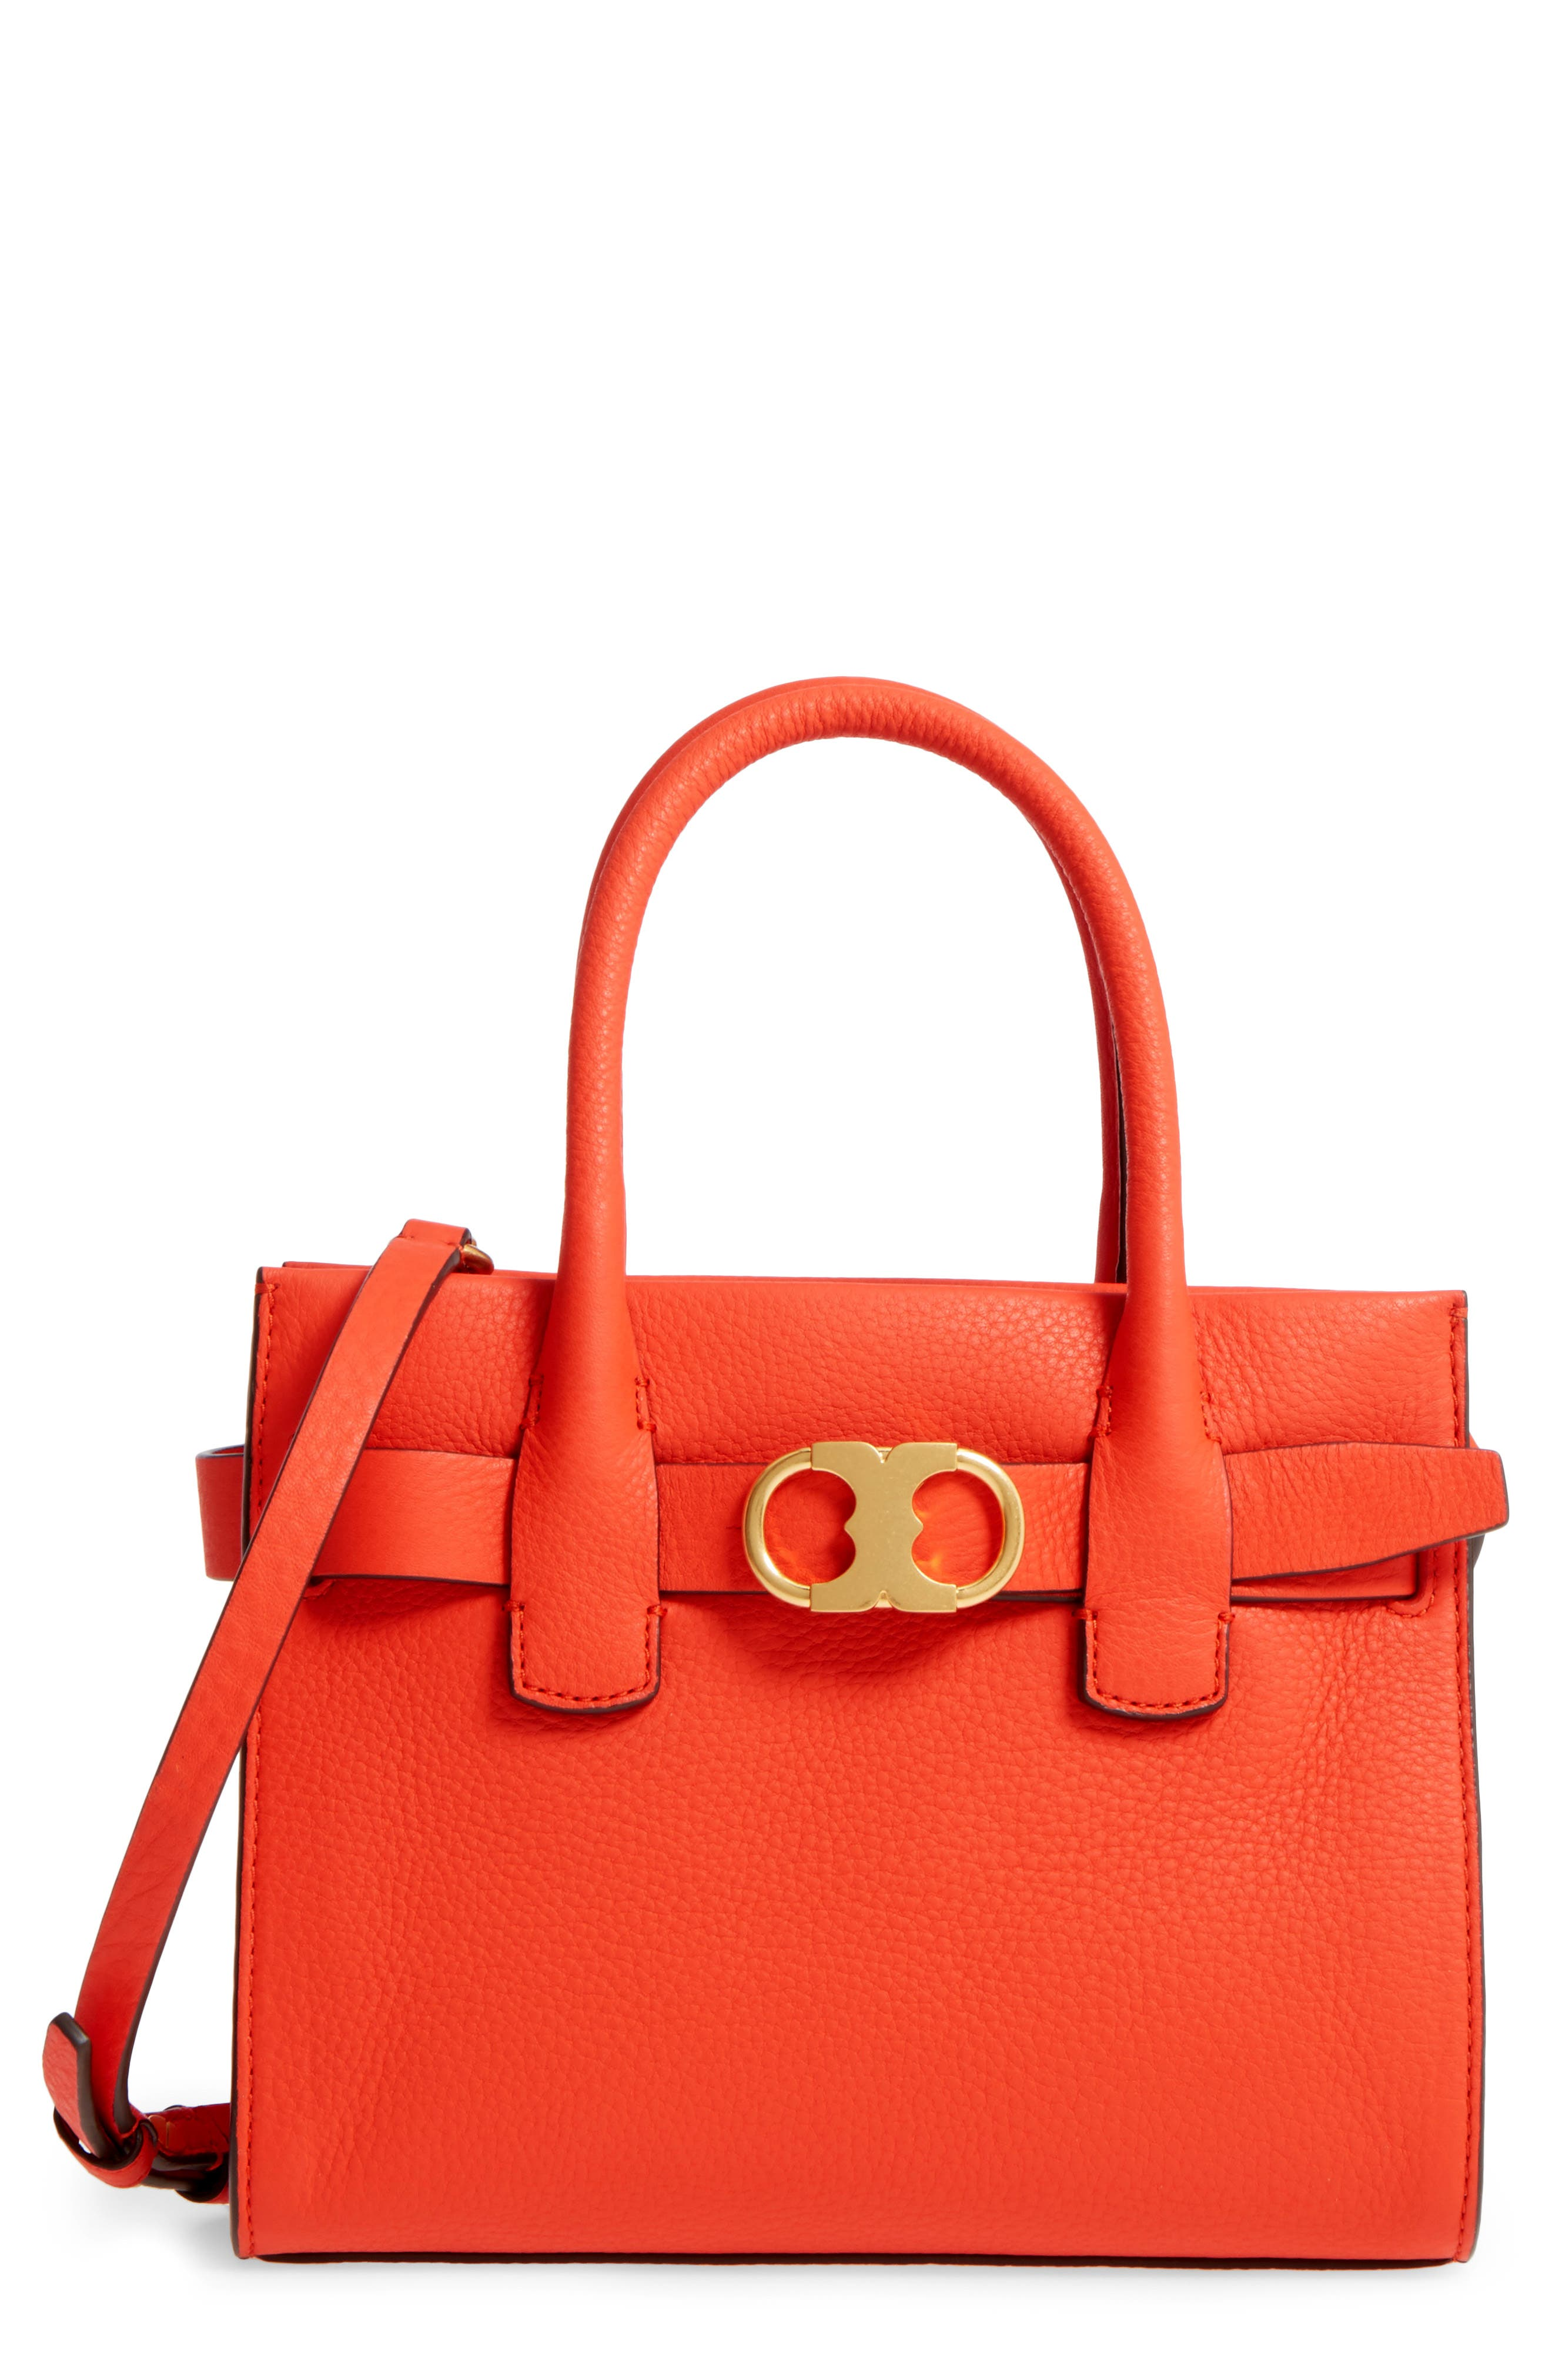 Alternate Image 1 Selected - Tory Burch Small Gemini Link Leather Tote